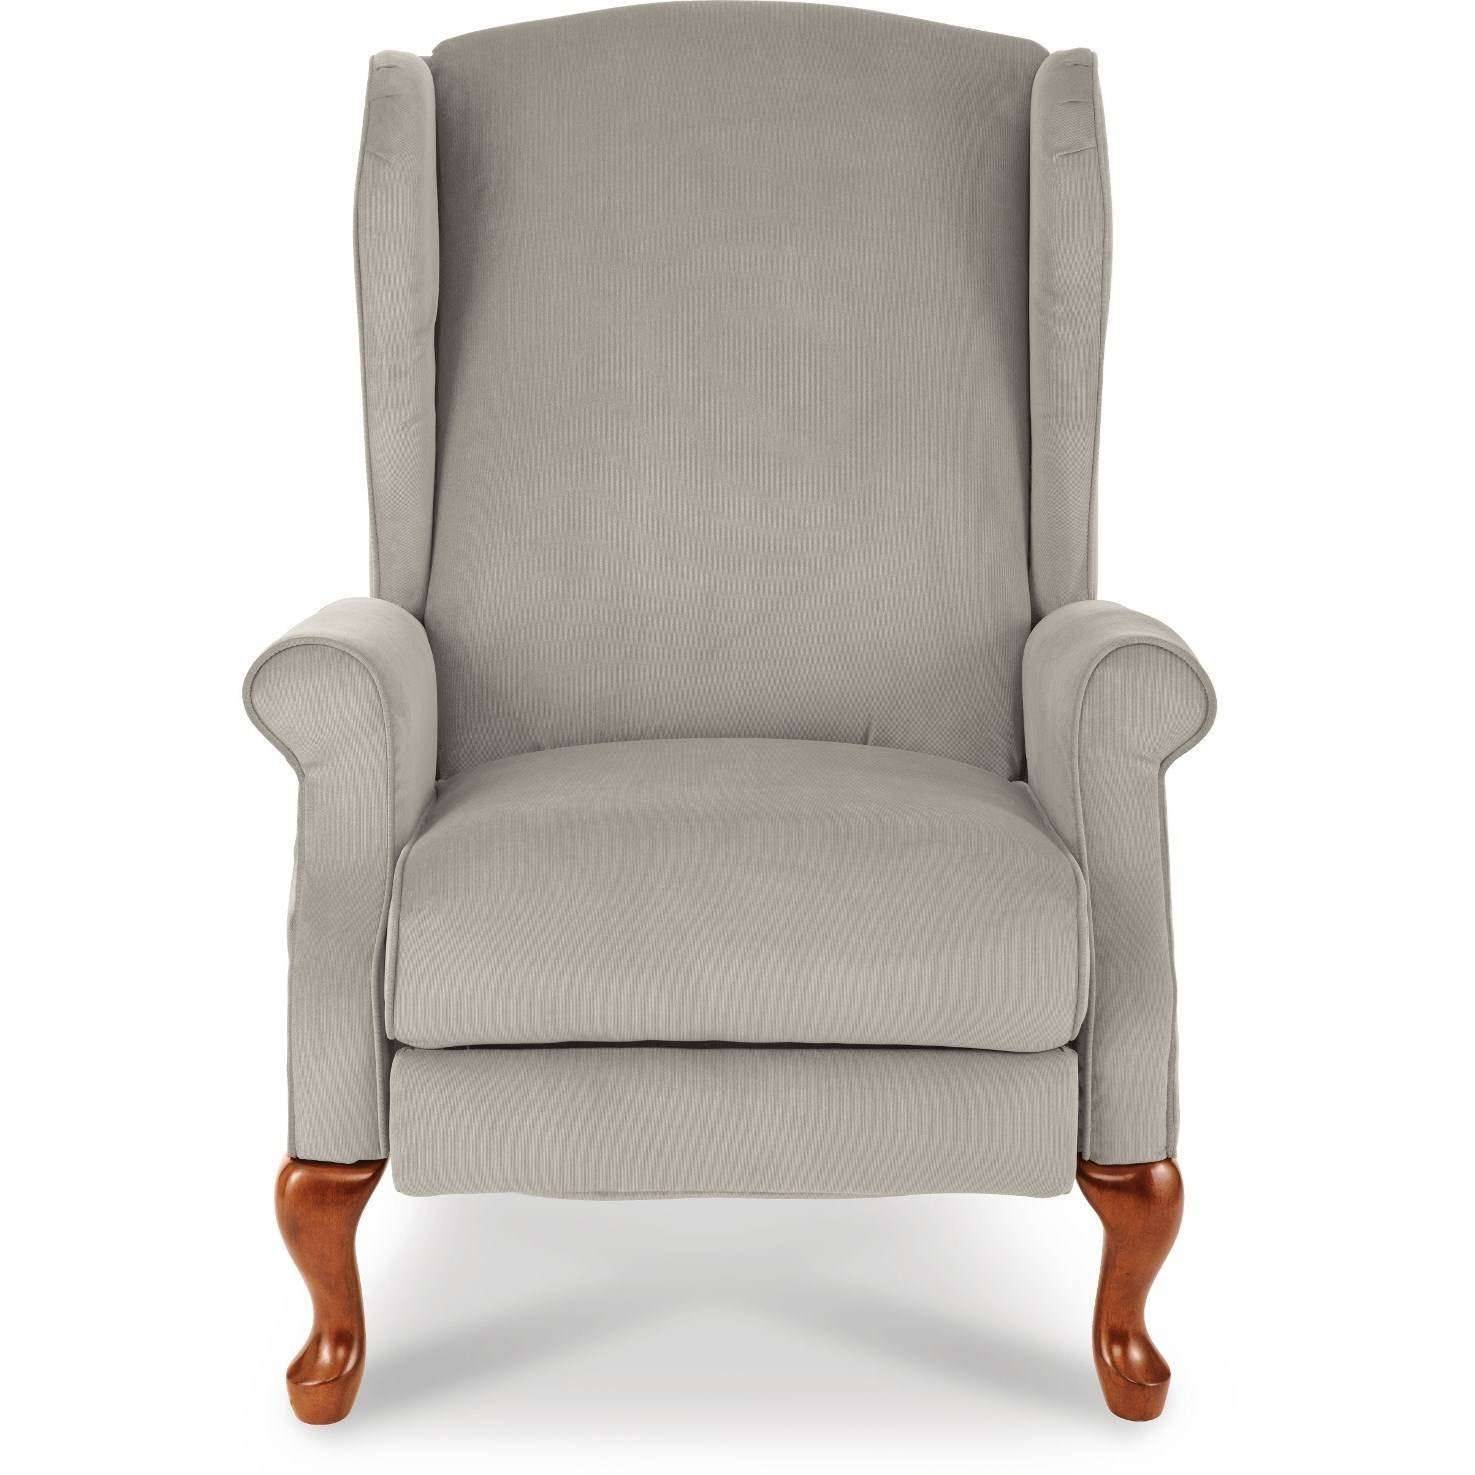 Recliners Kimberly Recliner by La-Z-Boy at Sparks HomeStore